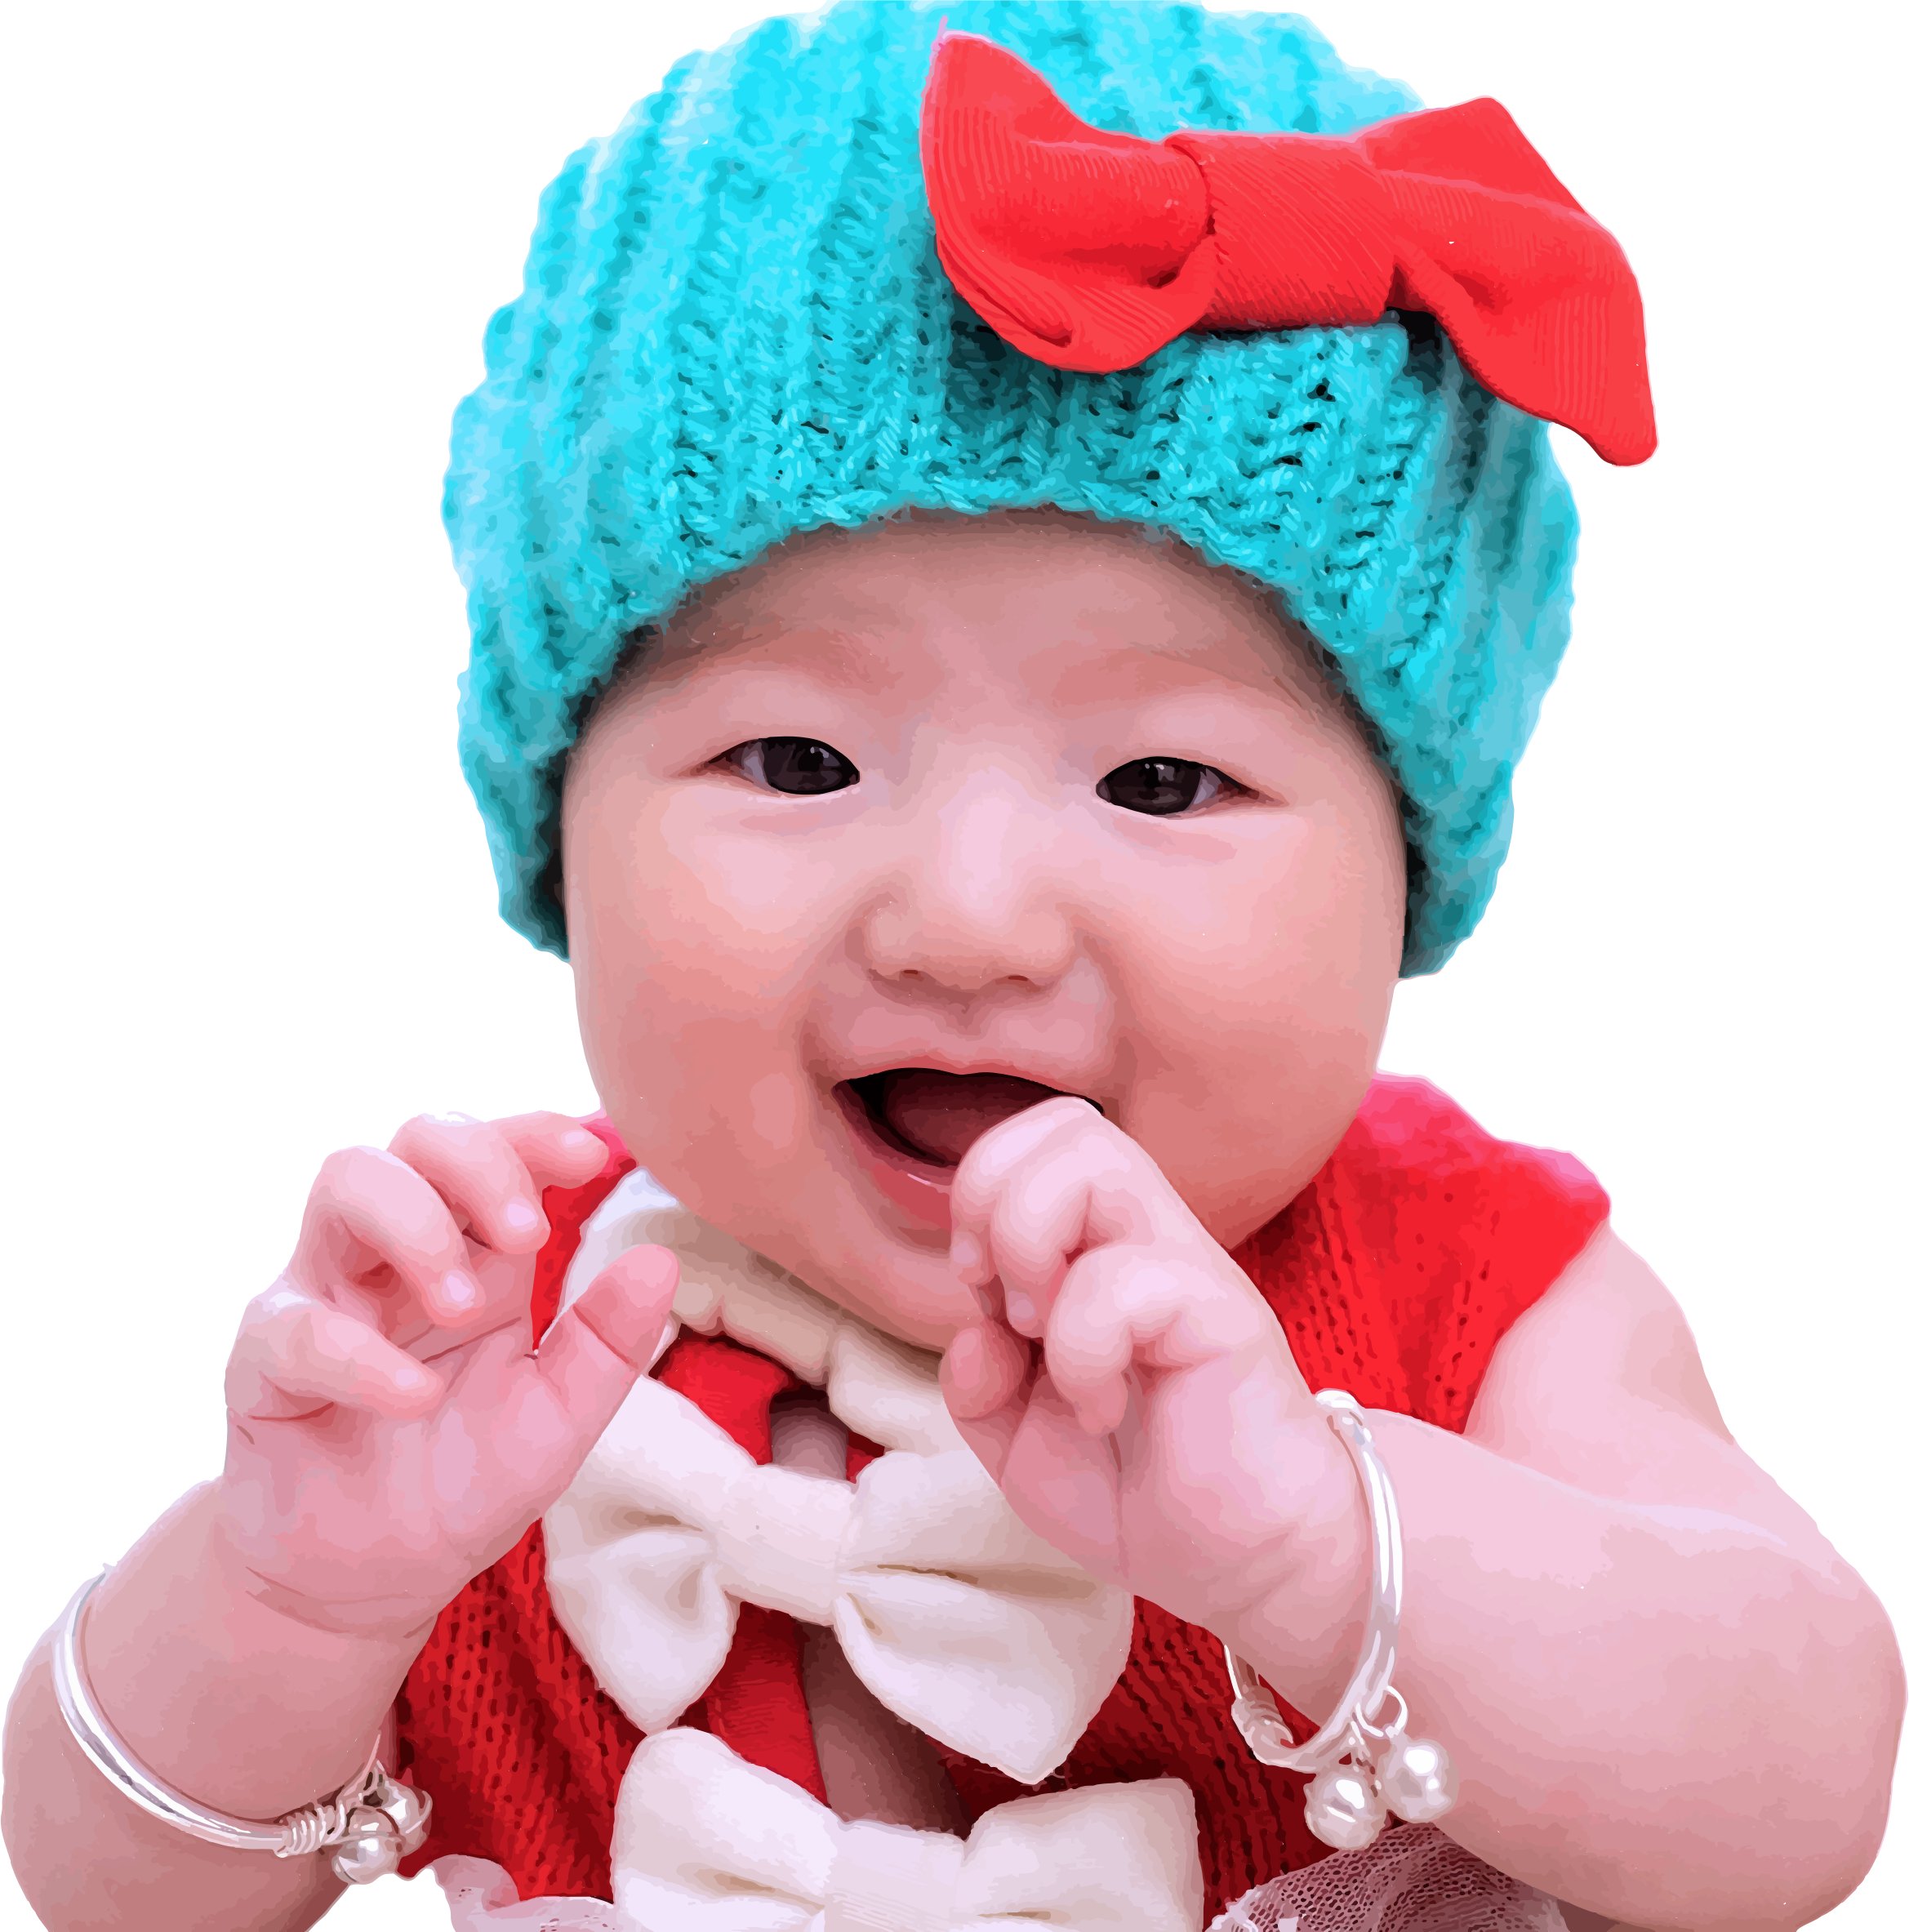 free photo: cute baby - innocent, smile, happy - free download - jooinn